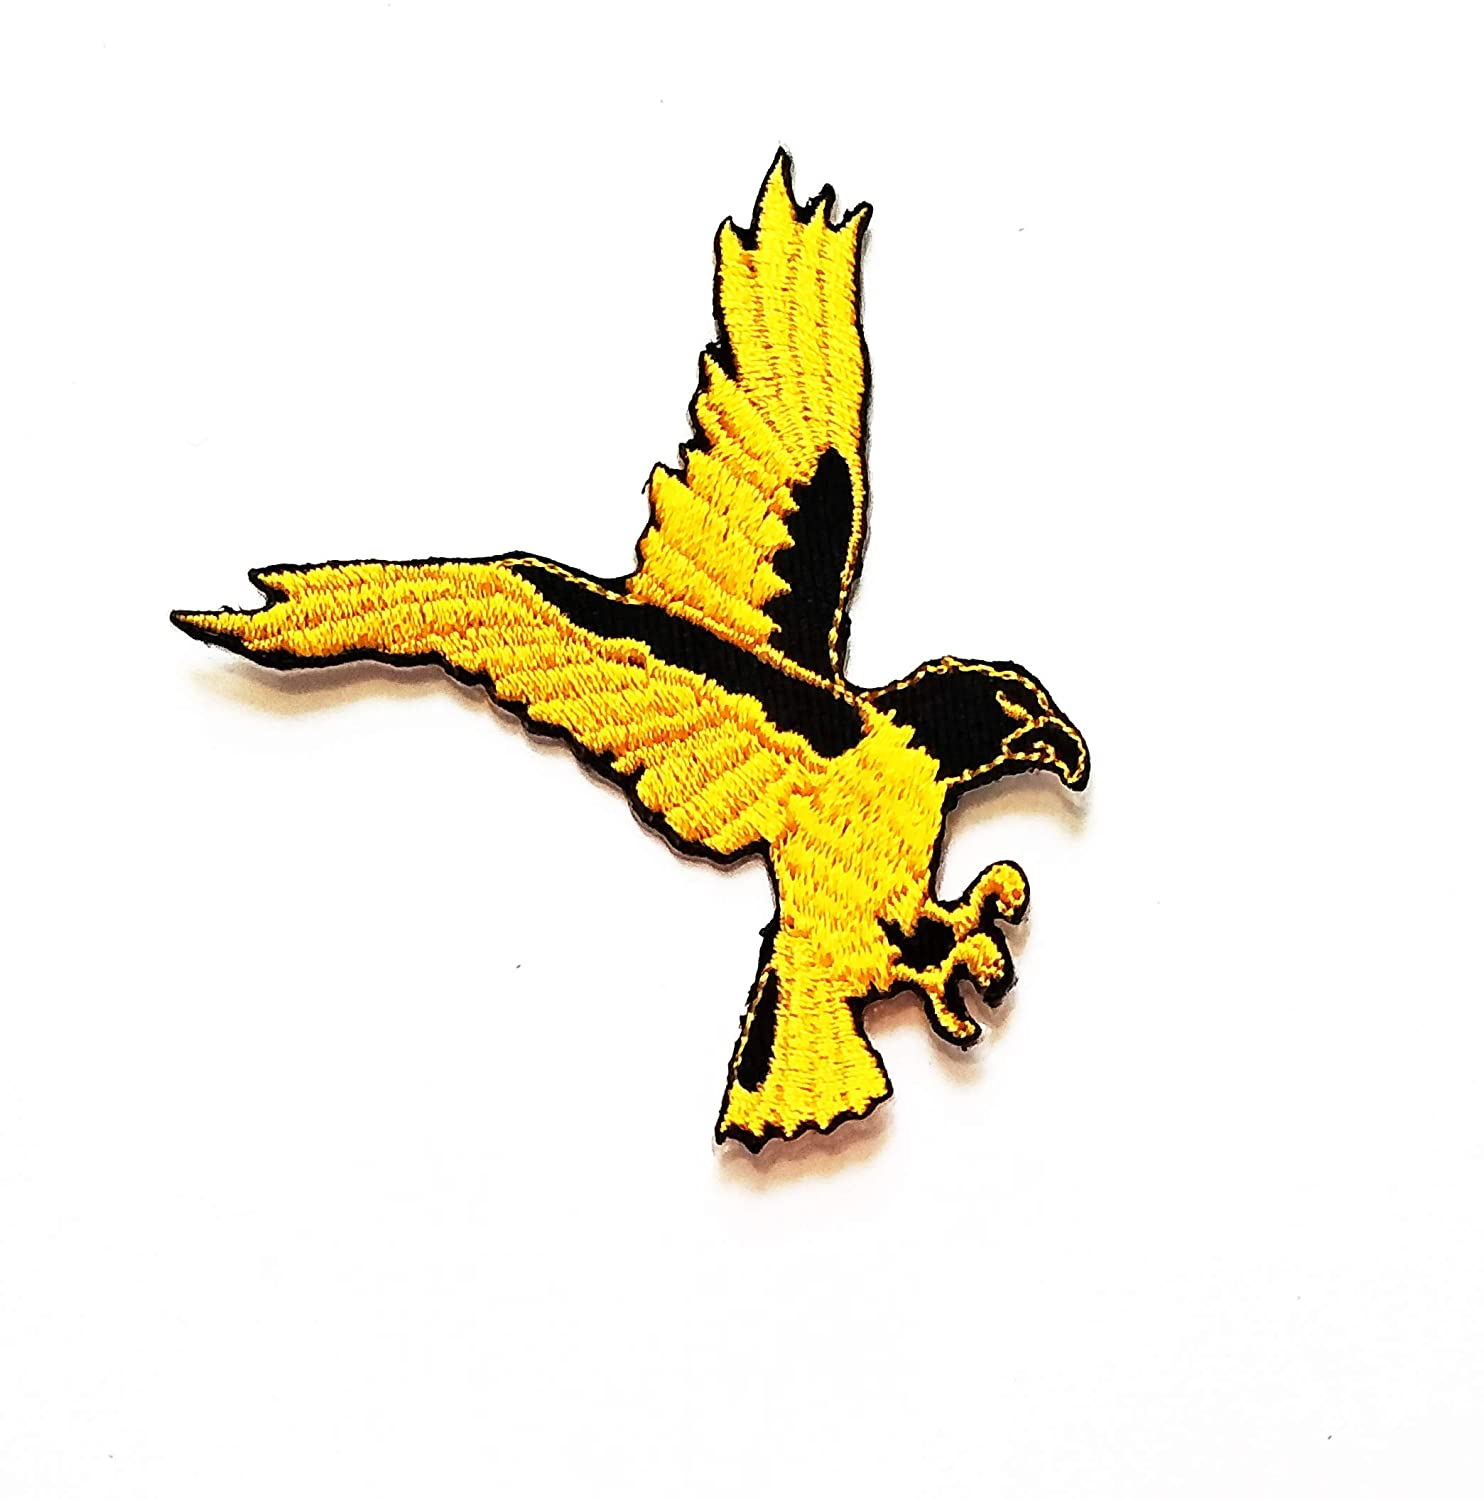 2.5'' X 2.8'' Cartoon gold Eagle Hawk Bird Flying Wild Animal Patch logo jacket t-shirt Jeans Polo Patch Iron on Embroidered Logo Sign Badge Animal Cartoon patch by Tour les jours shop